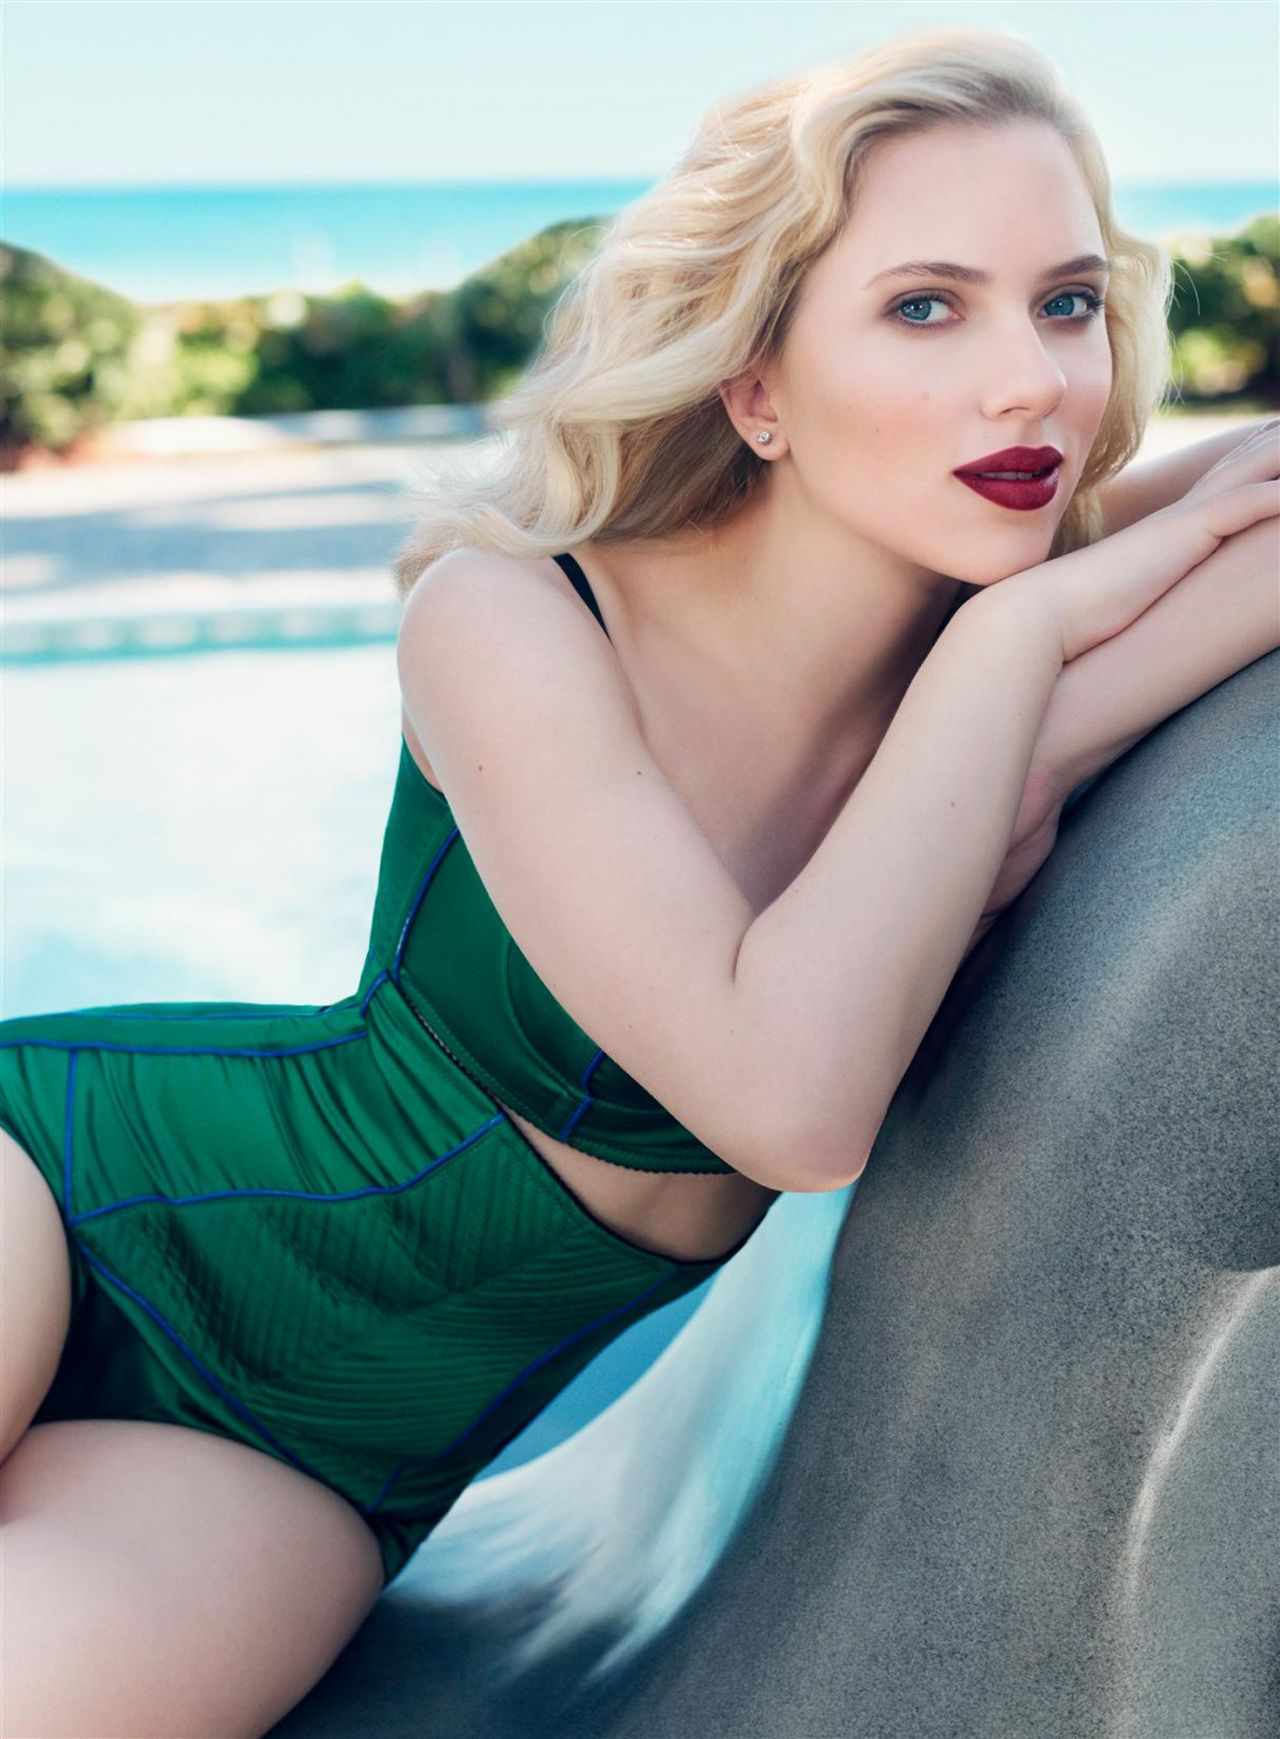 http://celebmafia.com/wp-content/uploads/2014/03/scarlett-johansson-california-style-magazine-april-2014-issue_1.jpg